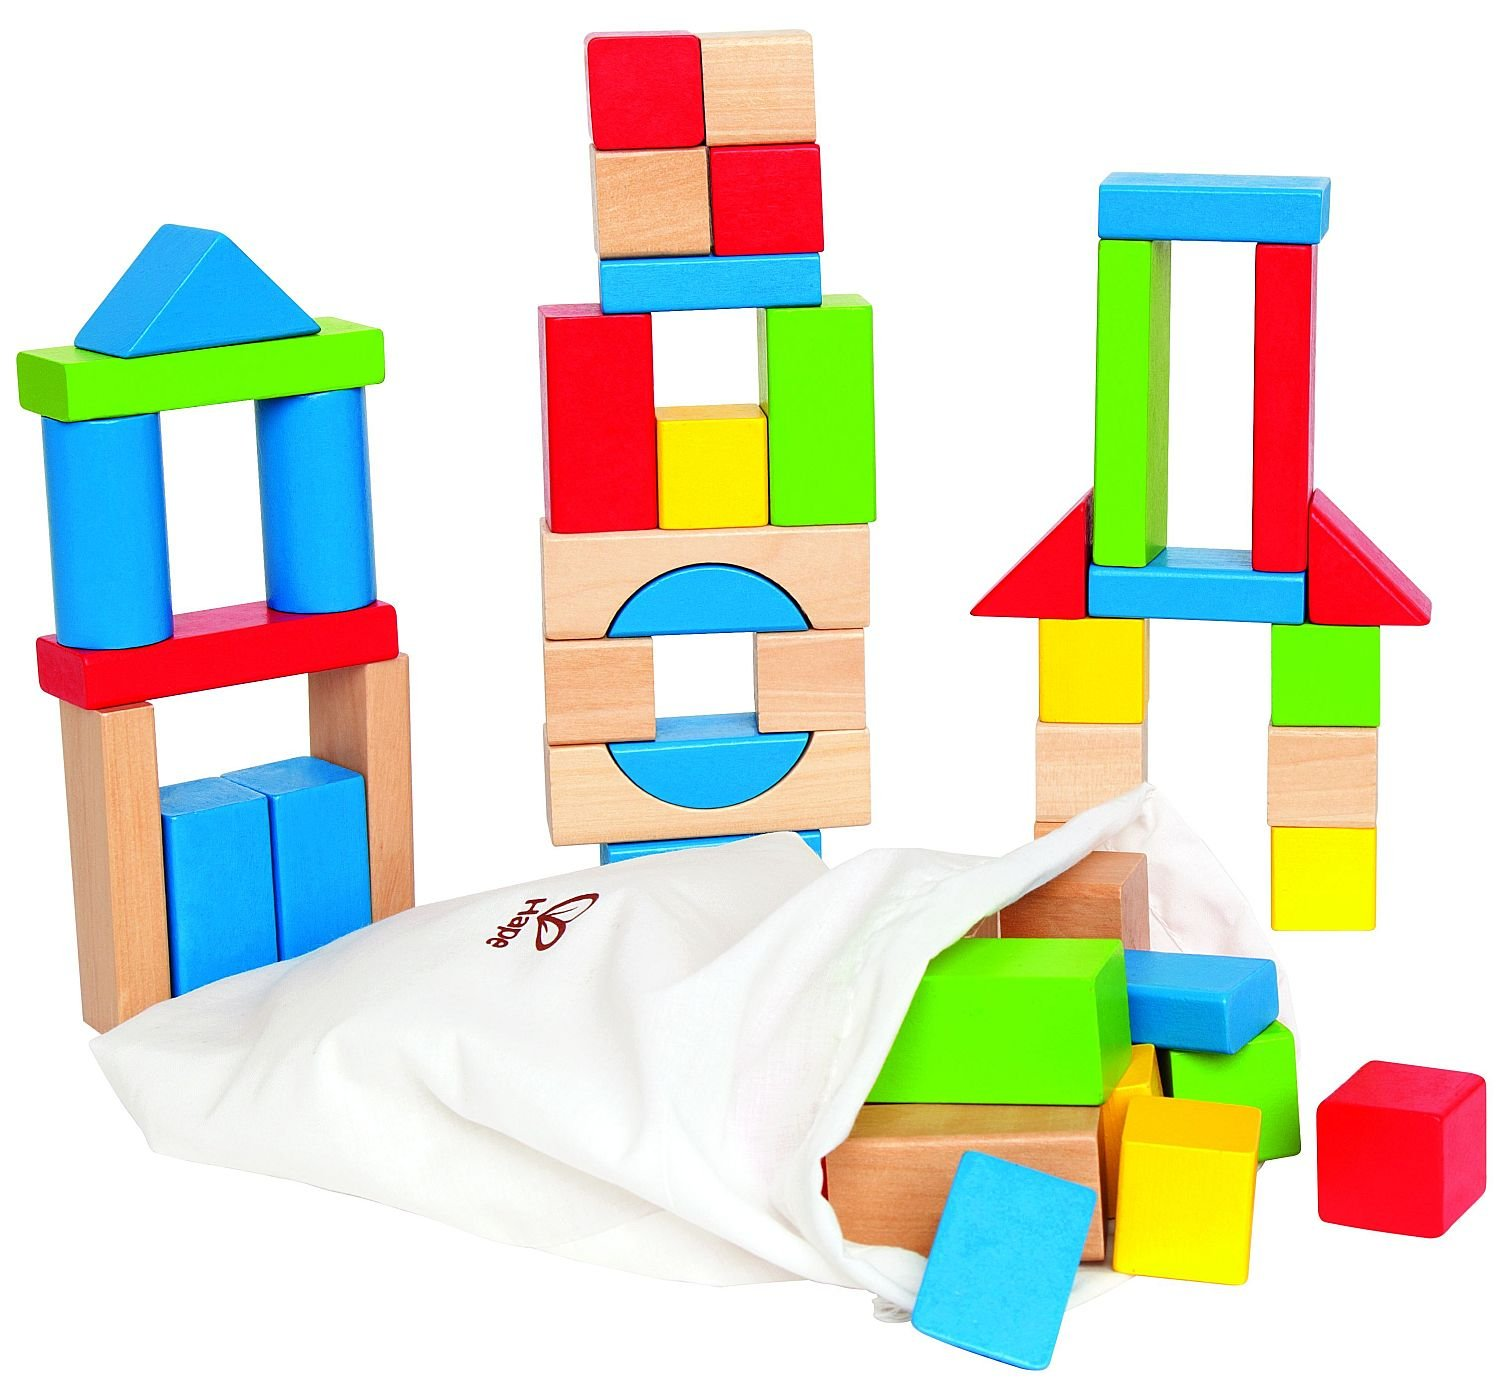 Hape Maple Wood Kid's Building Blocks in Assorted Shapes and Sizes